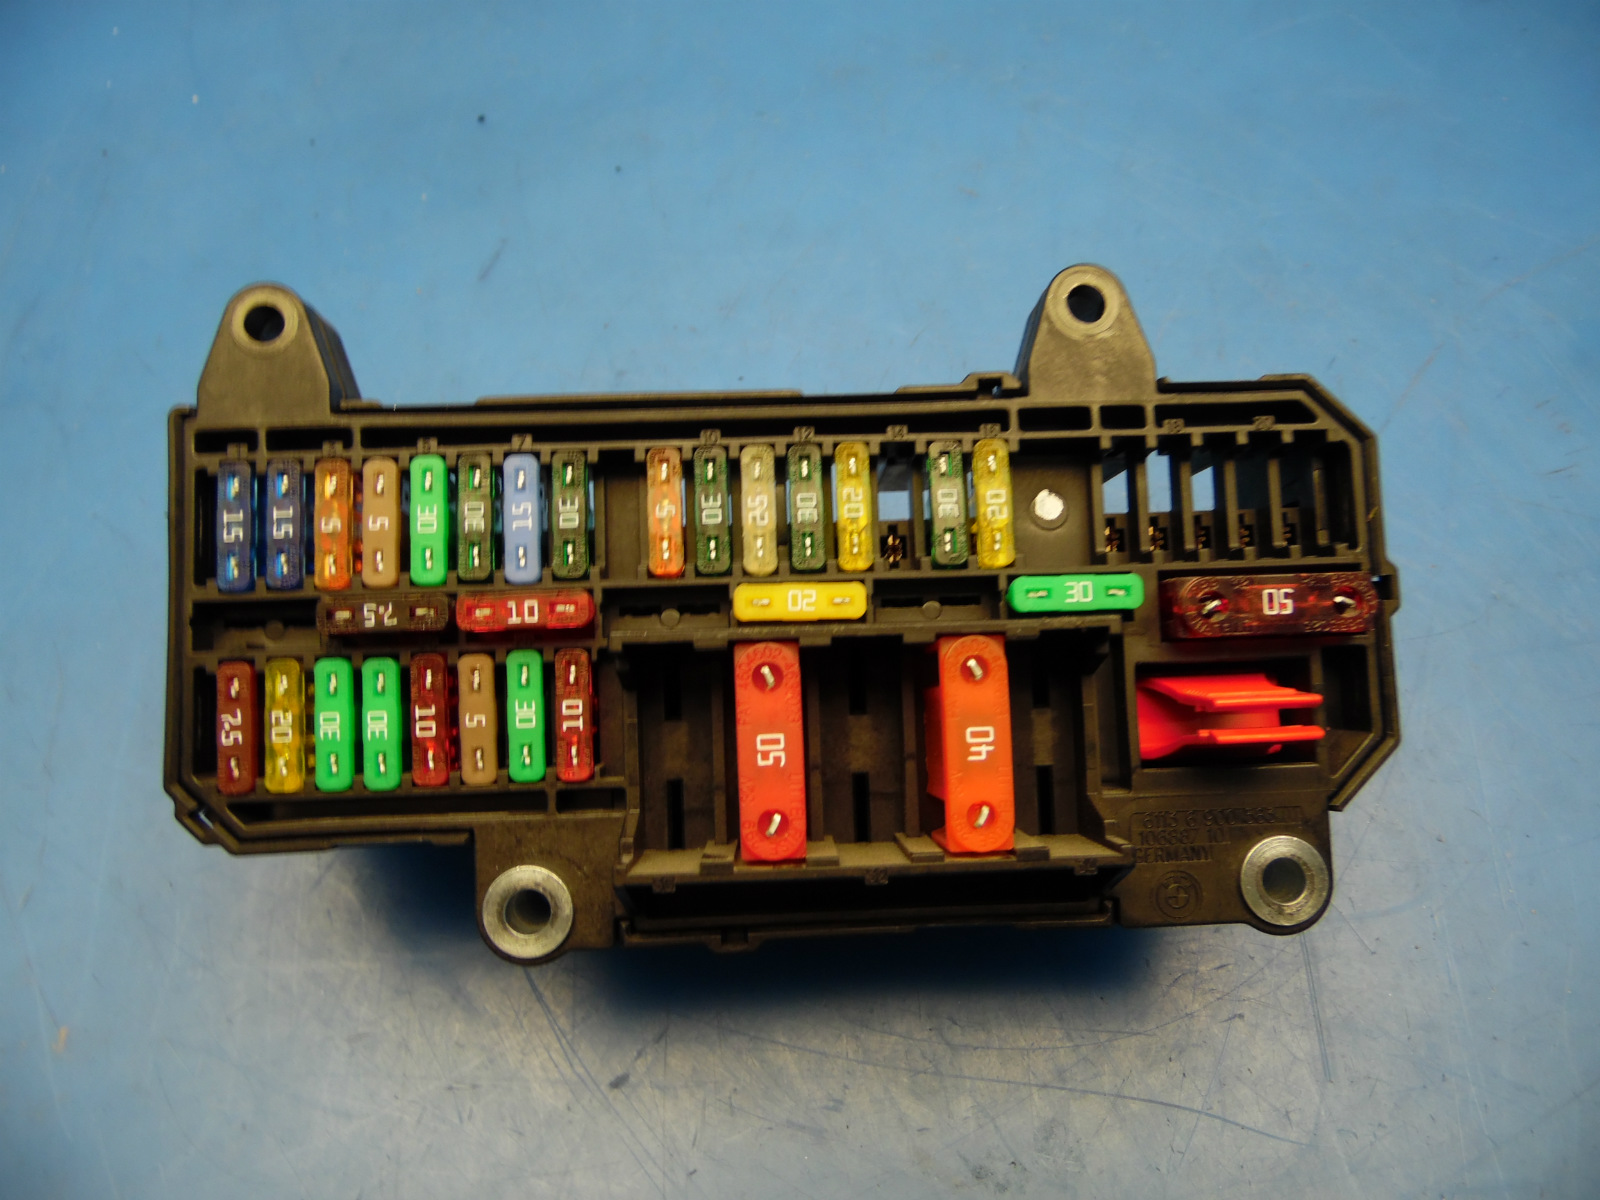 02-05 BMW 7 Series E65/E66 OEM fuse box with fuses Part # 18572 13133